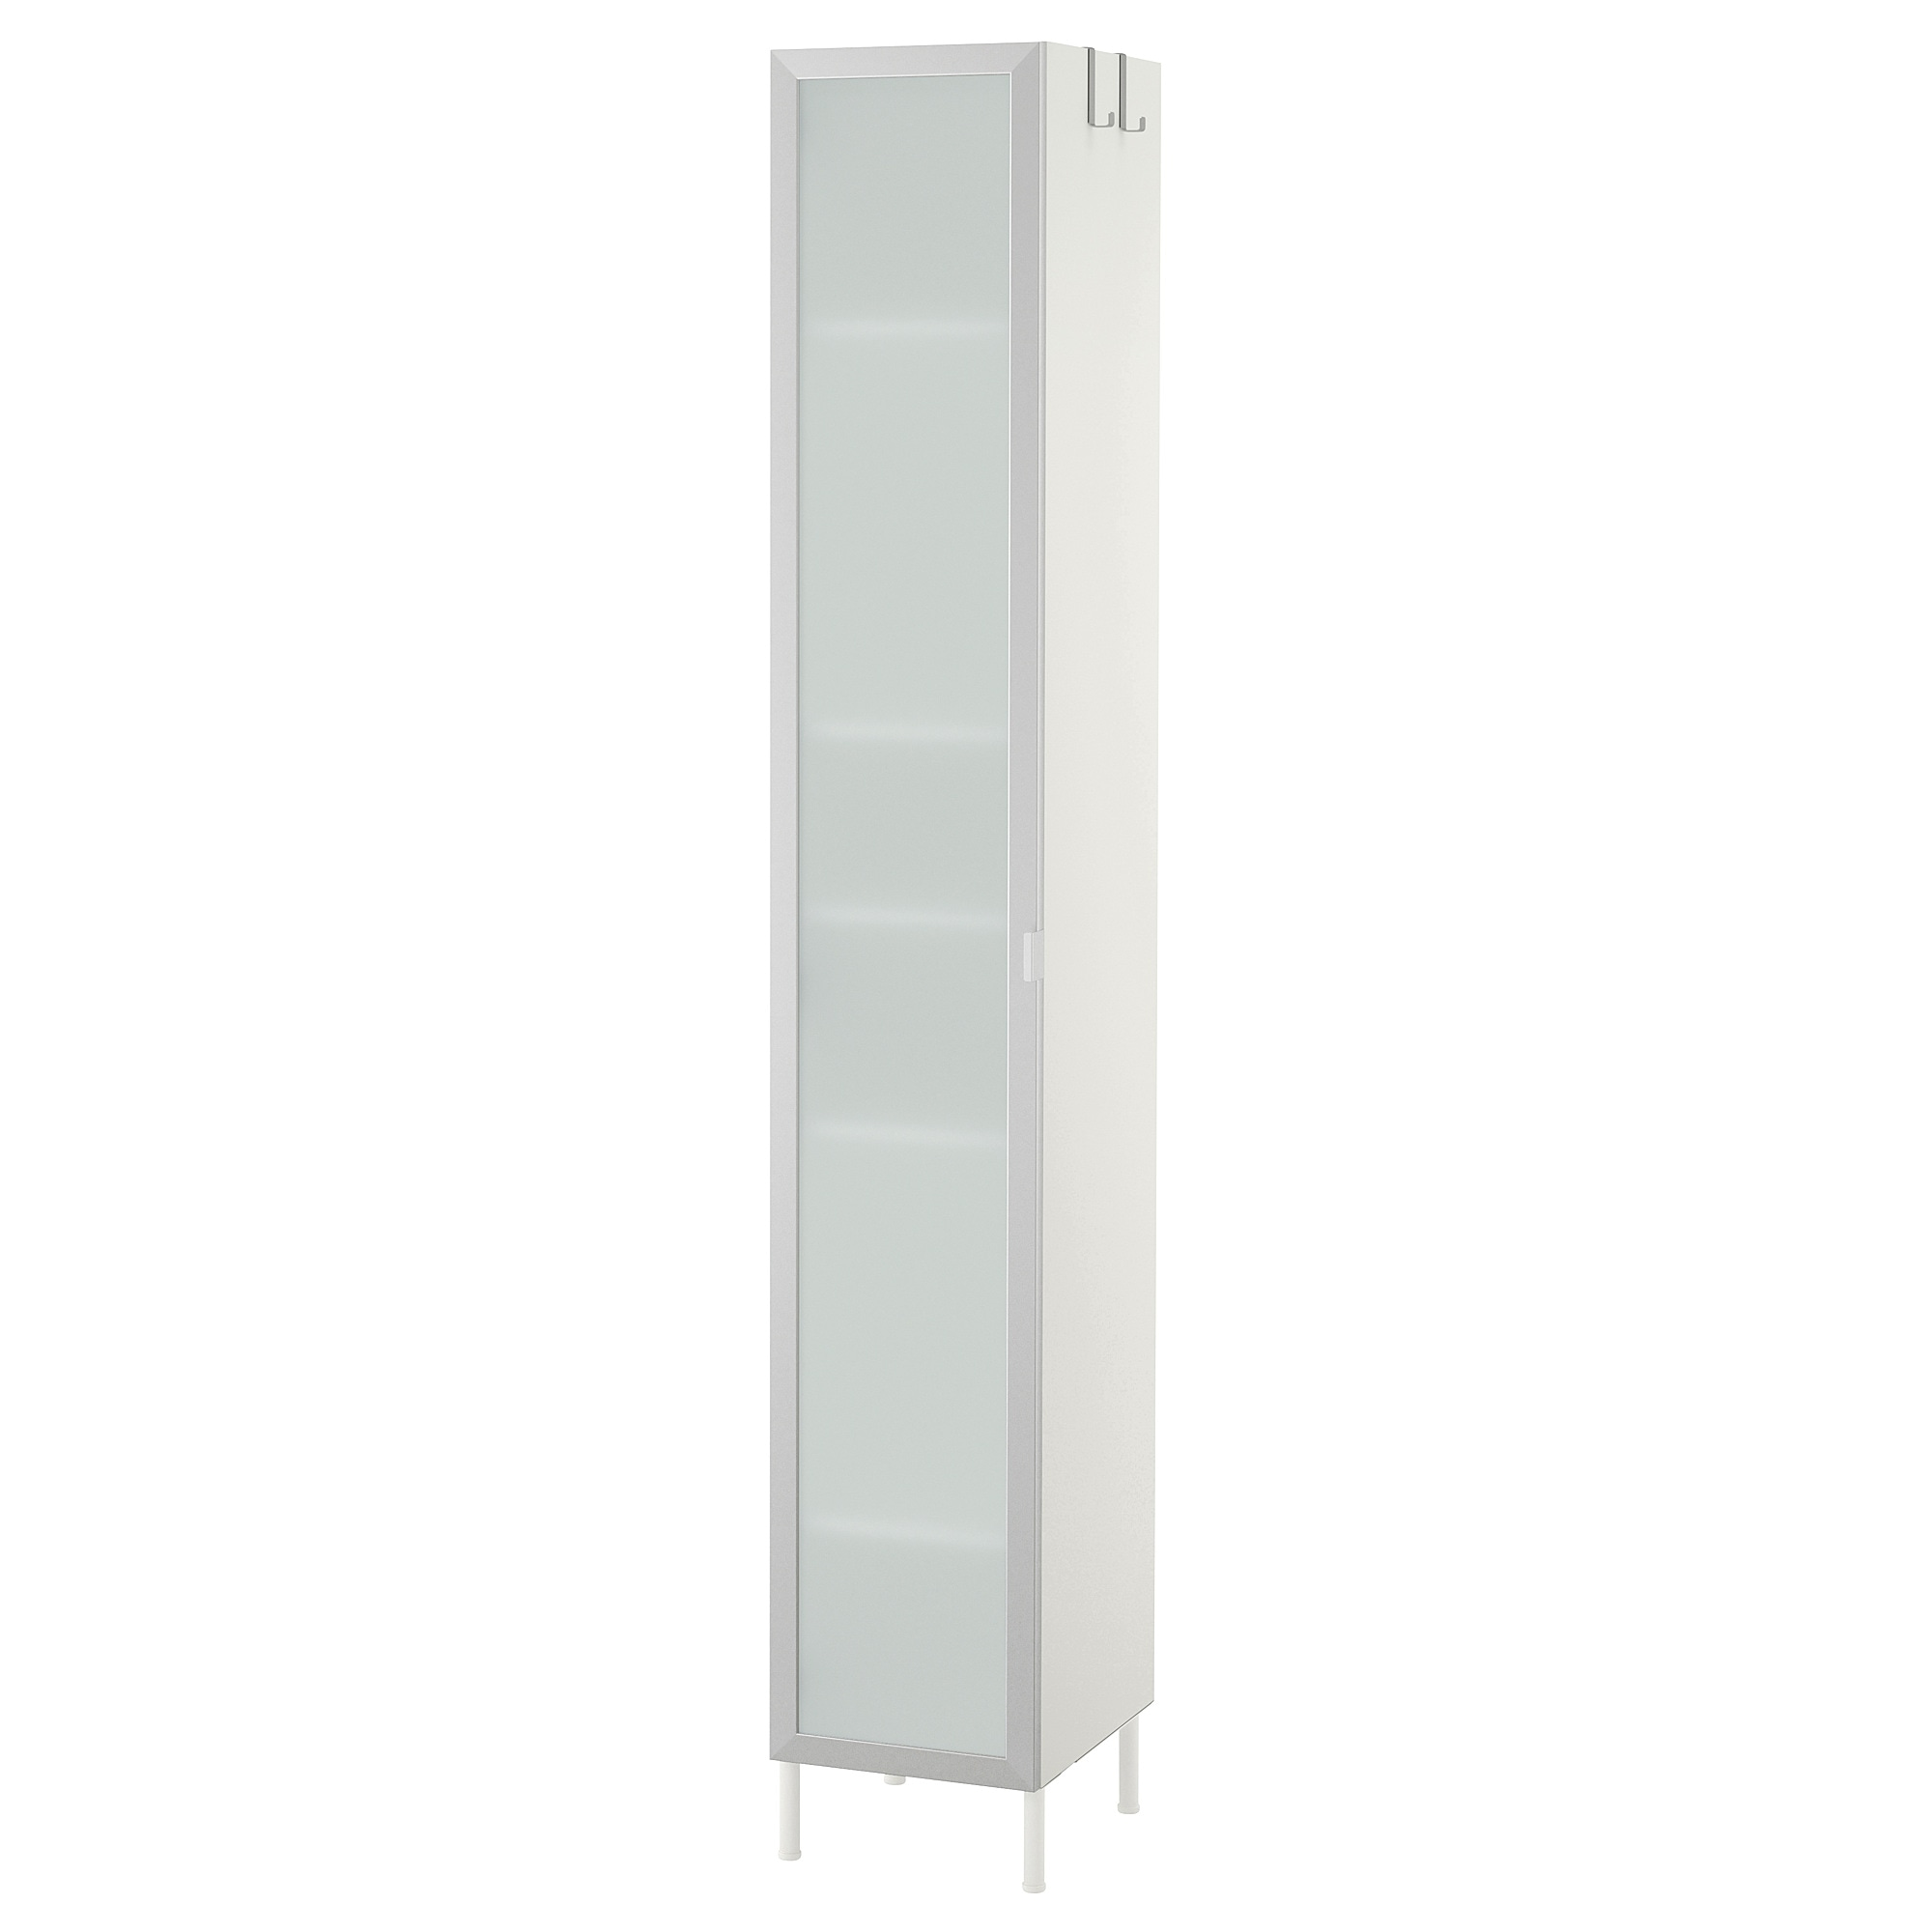 Bathroom Cabinets - High & Tall - IKEA